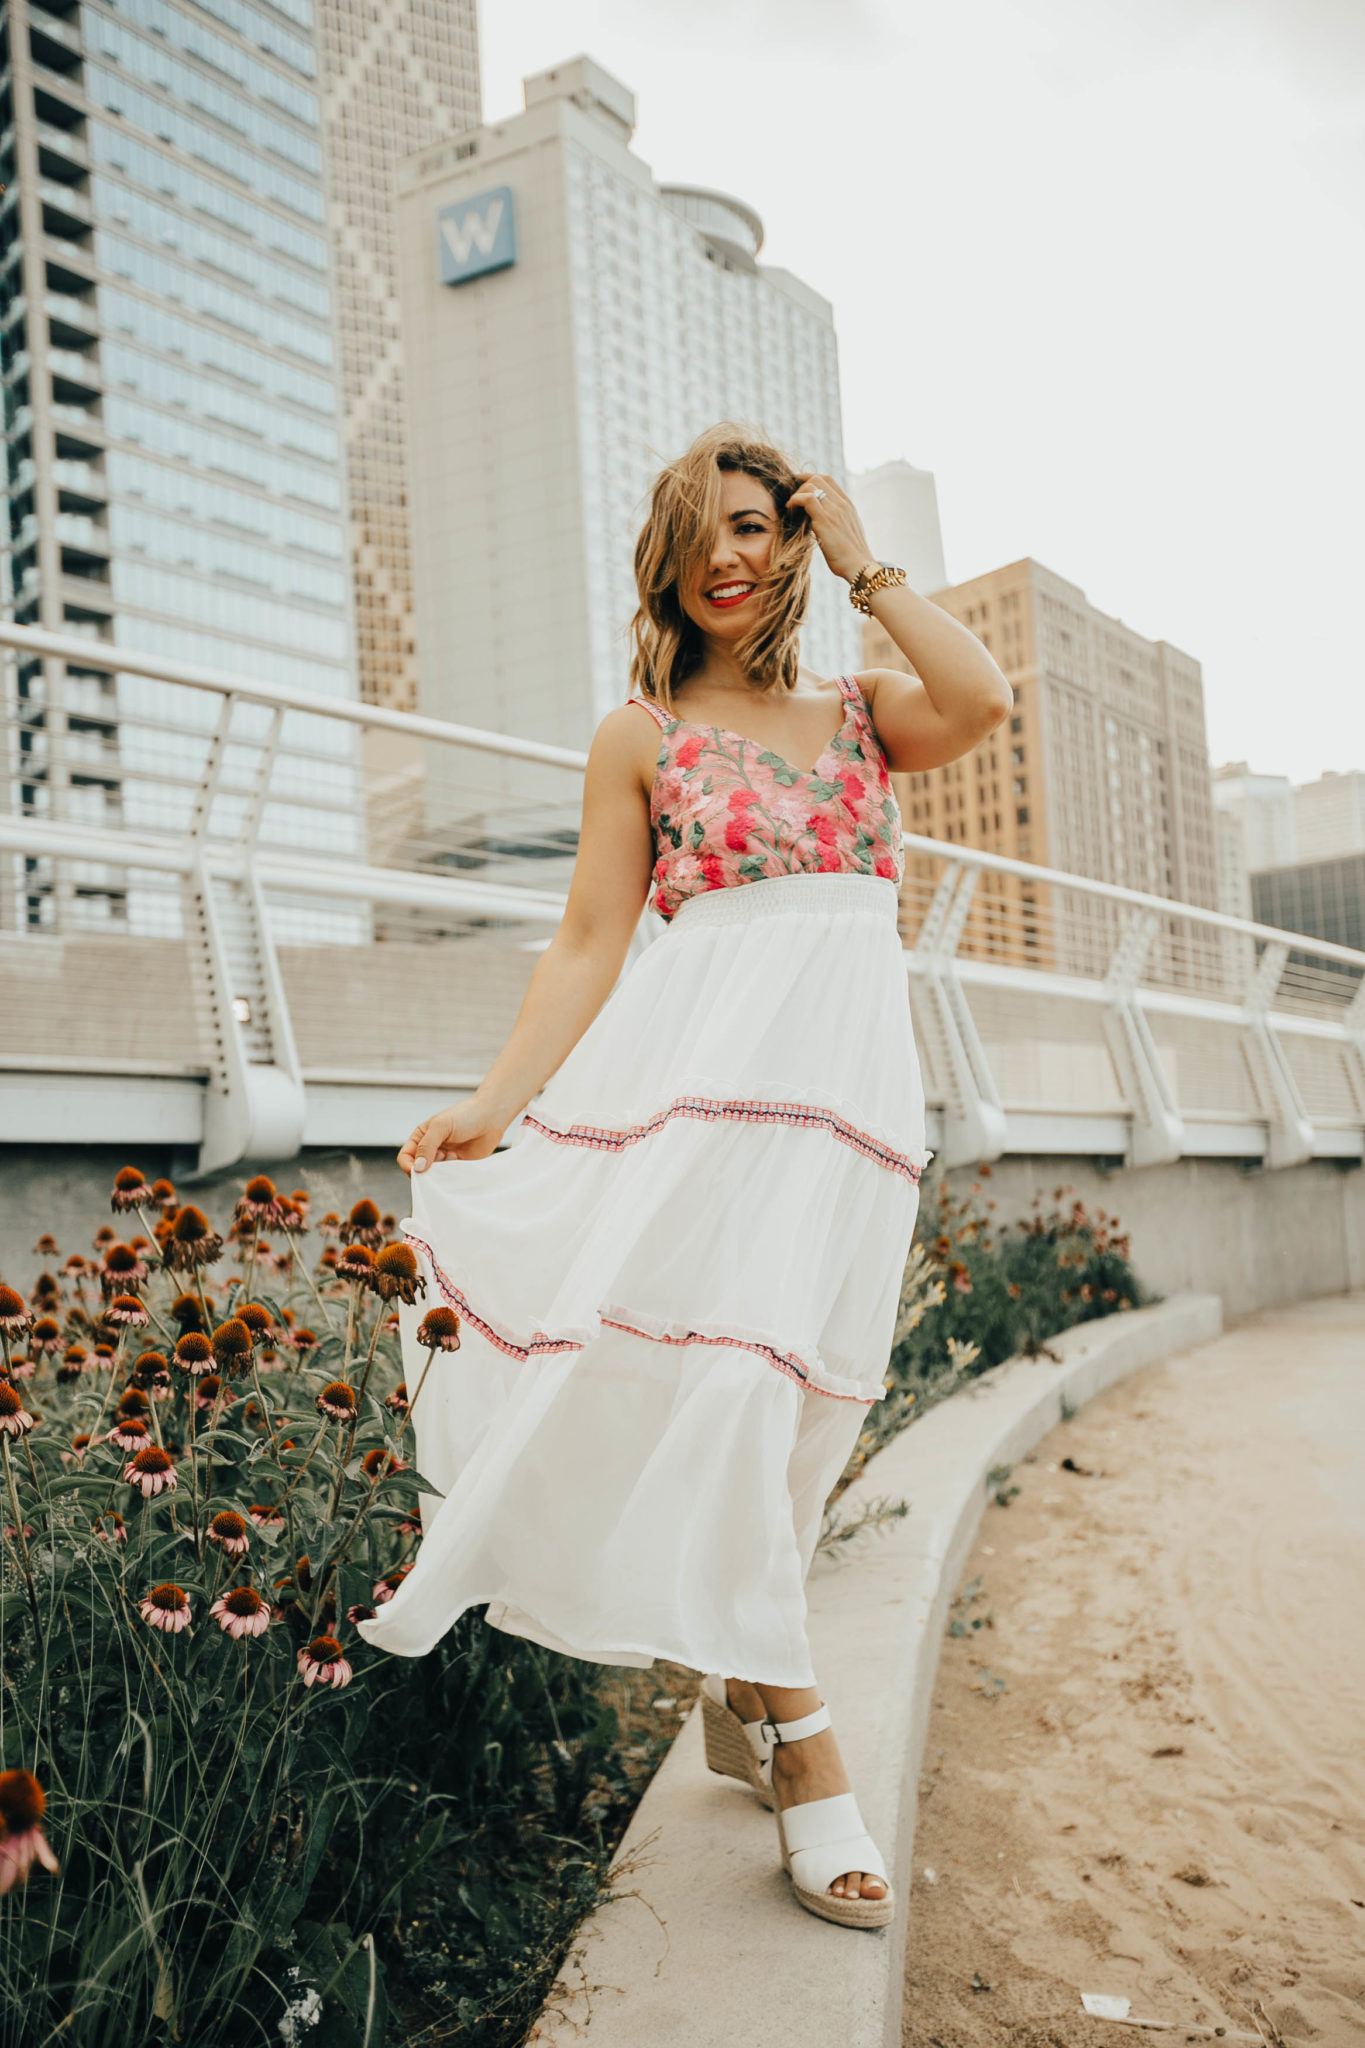 Jump Into The Dead Flowers | Floral Embroidered Dress & On Mondays We Link Up (#76) featured by popular Chicago fashion blogger Glass of Glam